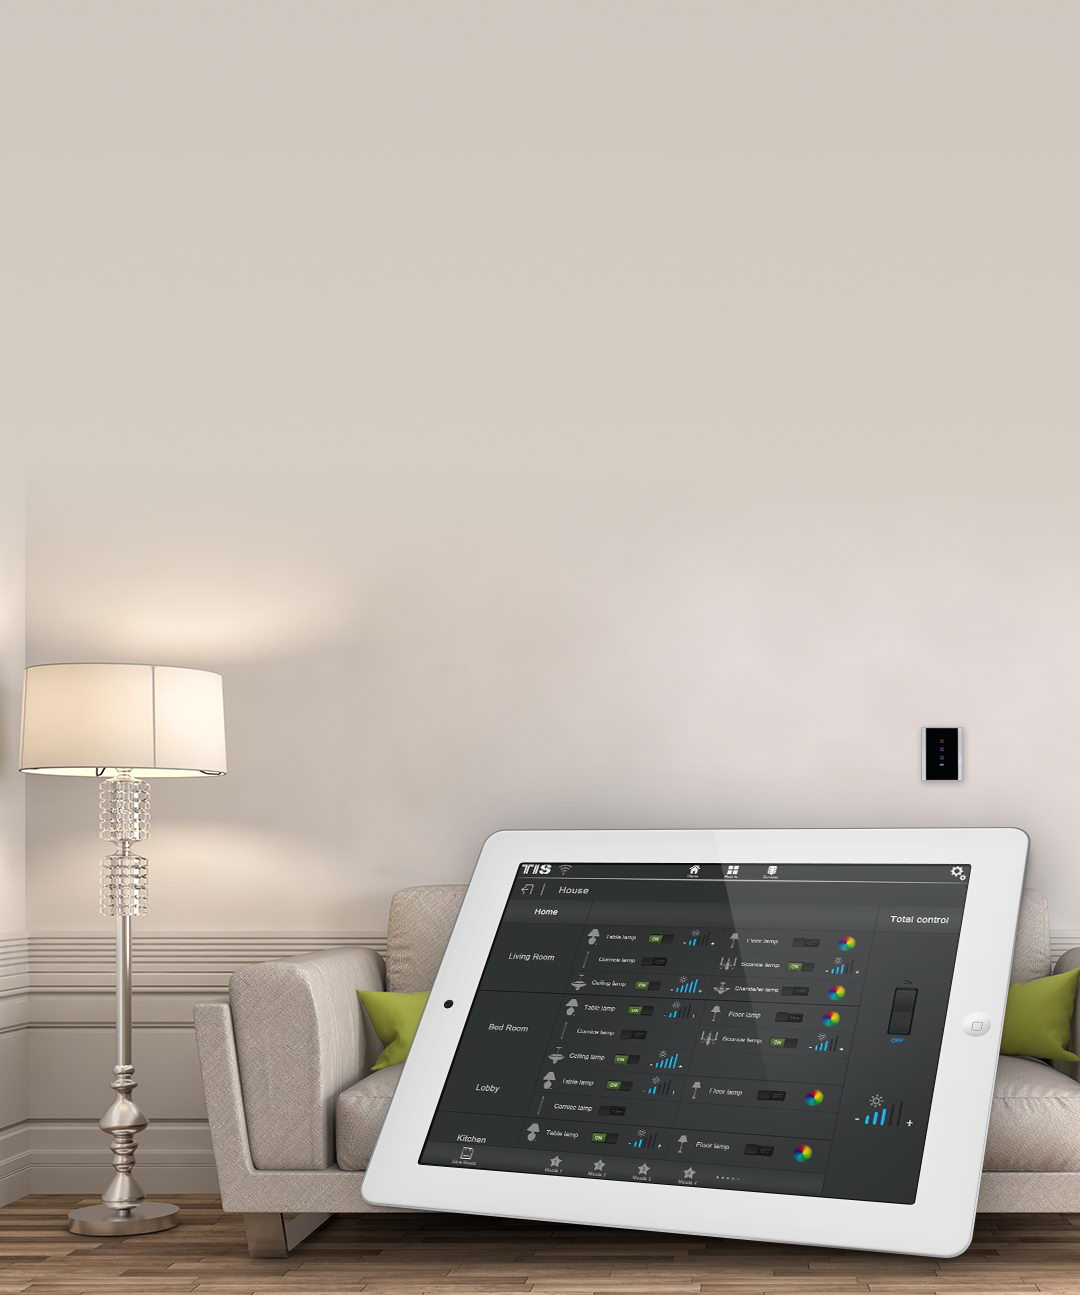 Control your lights mood from your ipad – TIS